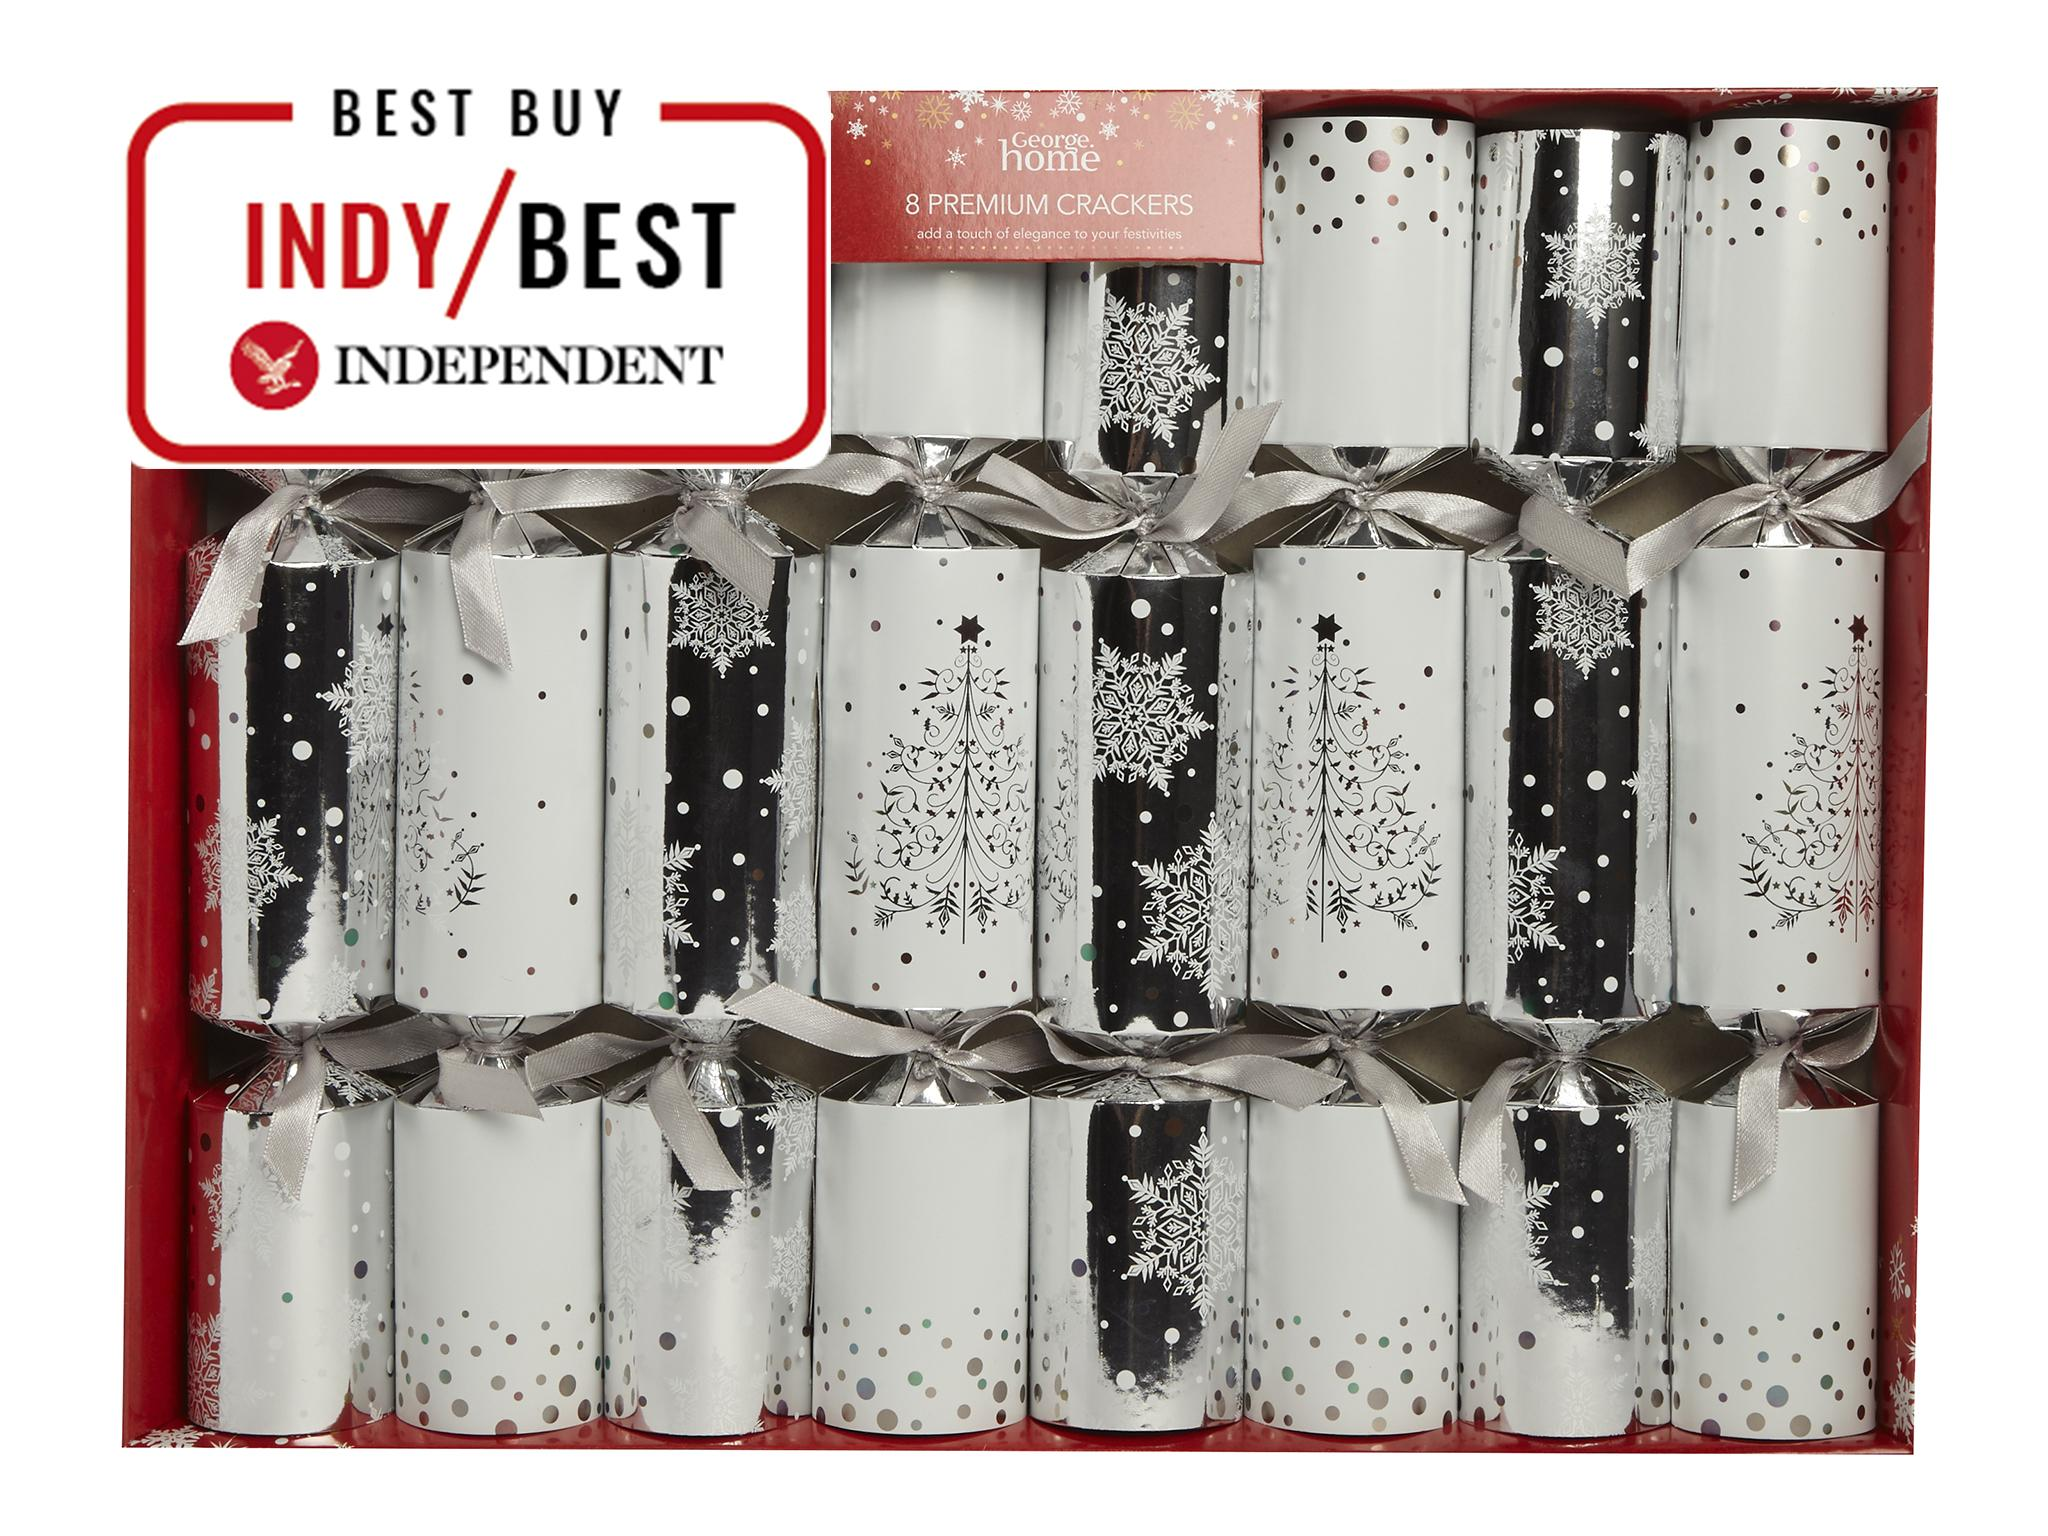 Christmas Crackers Contents.10 Best Christmas Crackers For 2018 The Independent